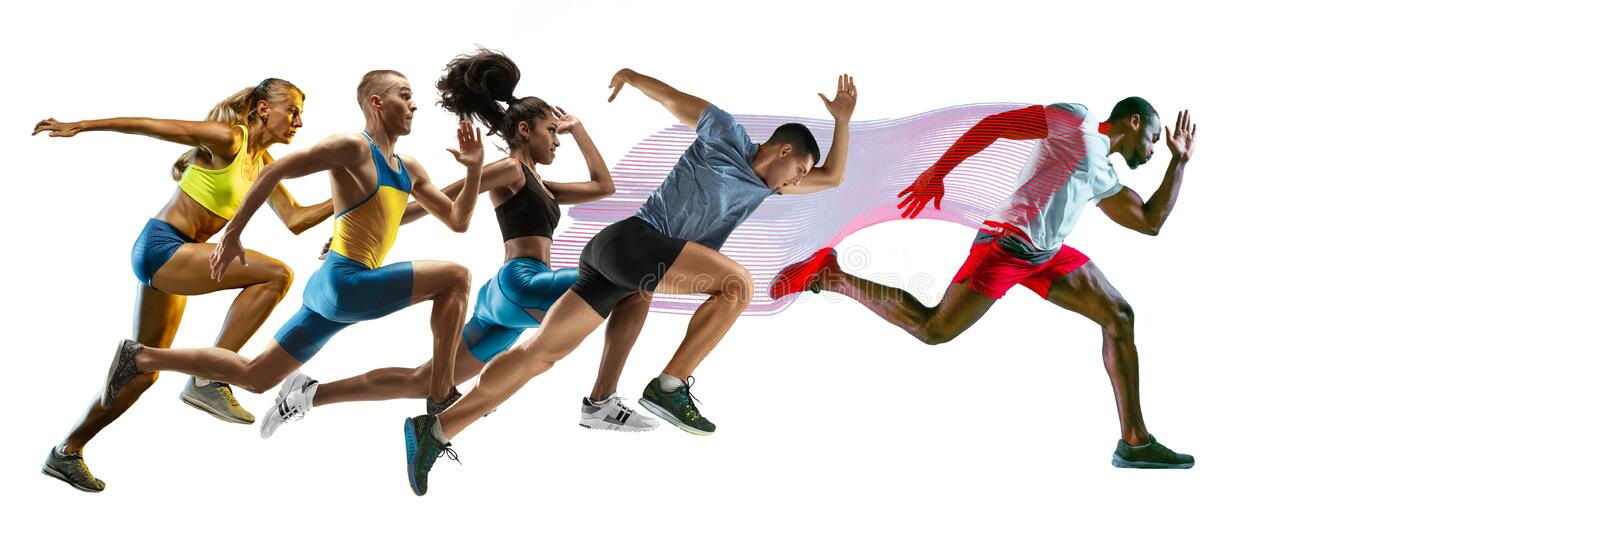 Creative collage of runners or joggers on white background royalty free stock photo